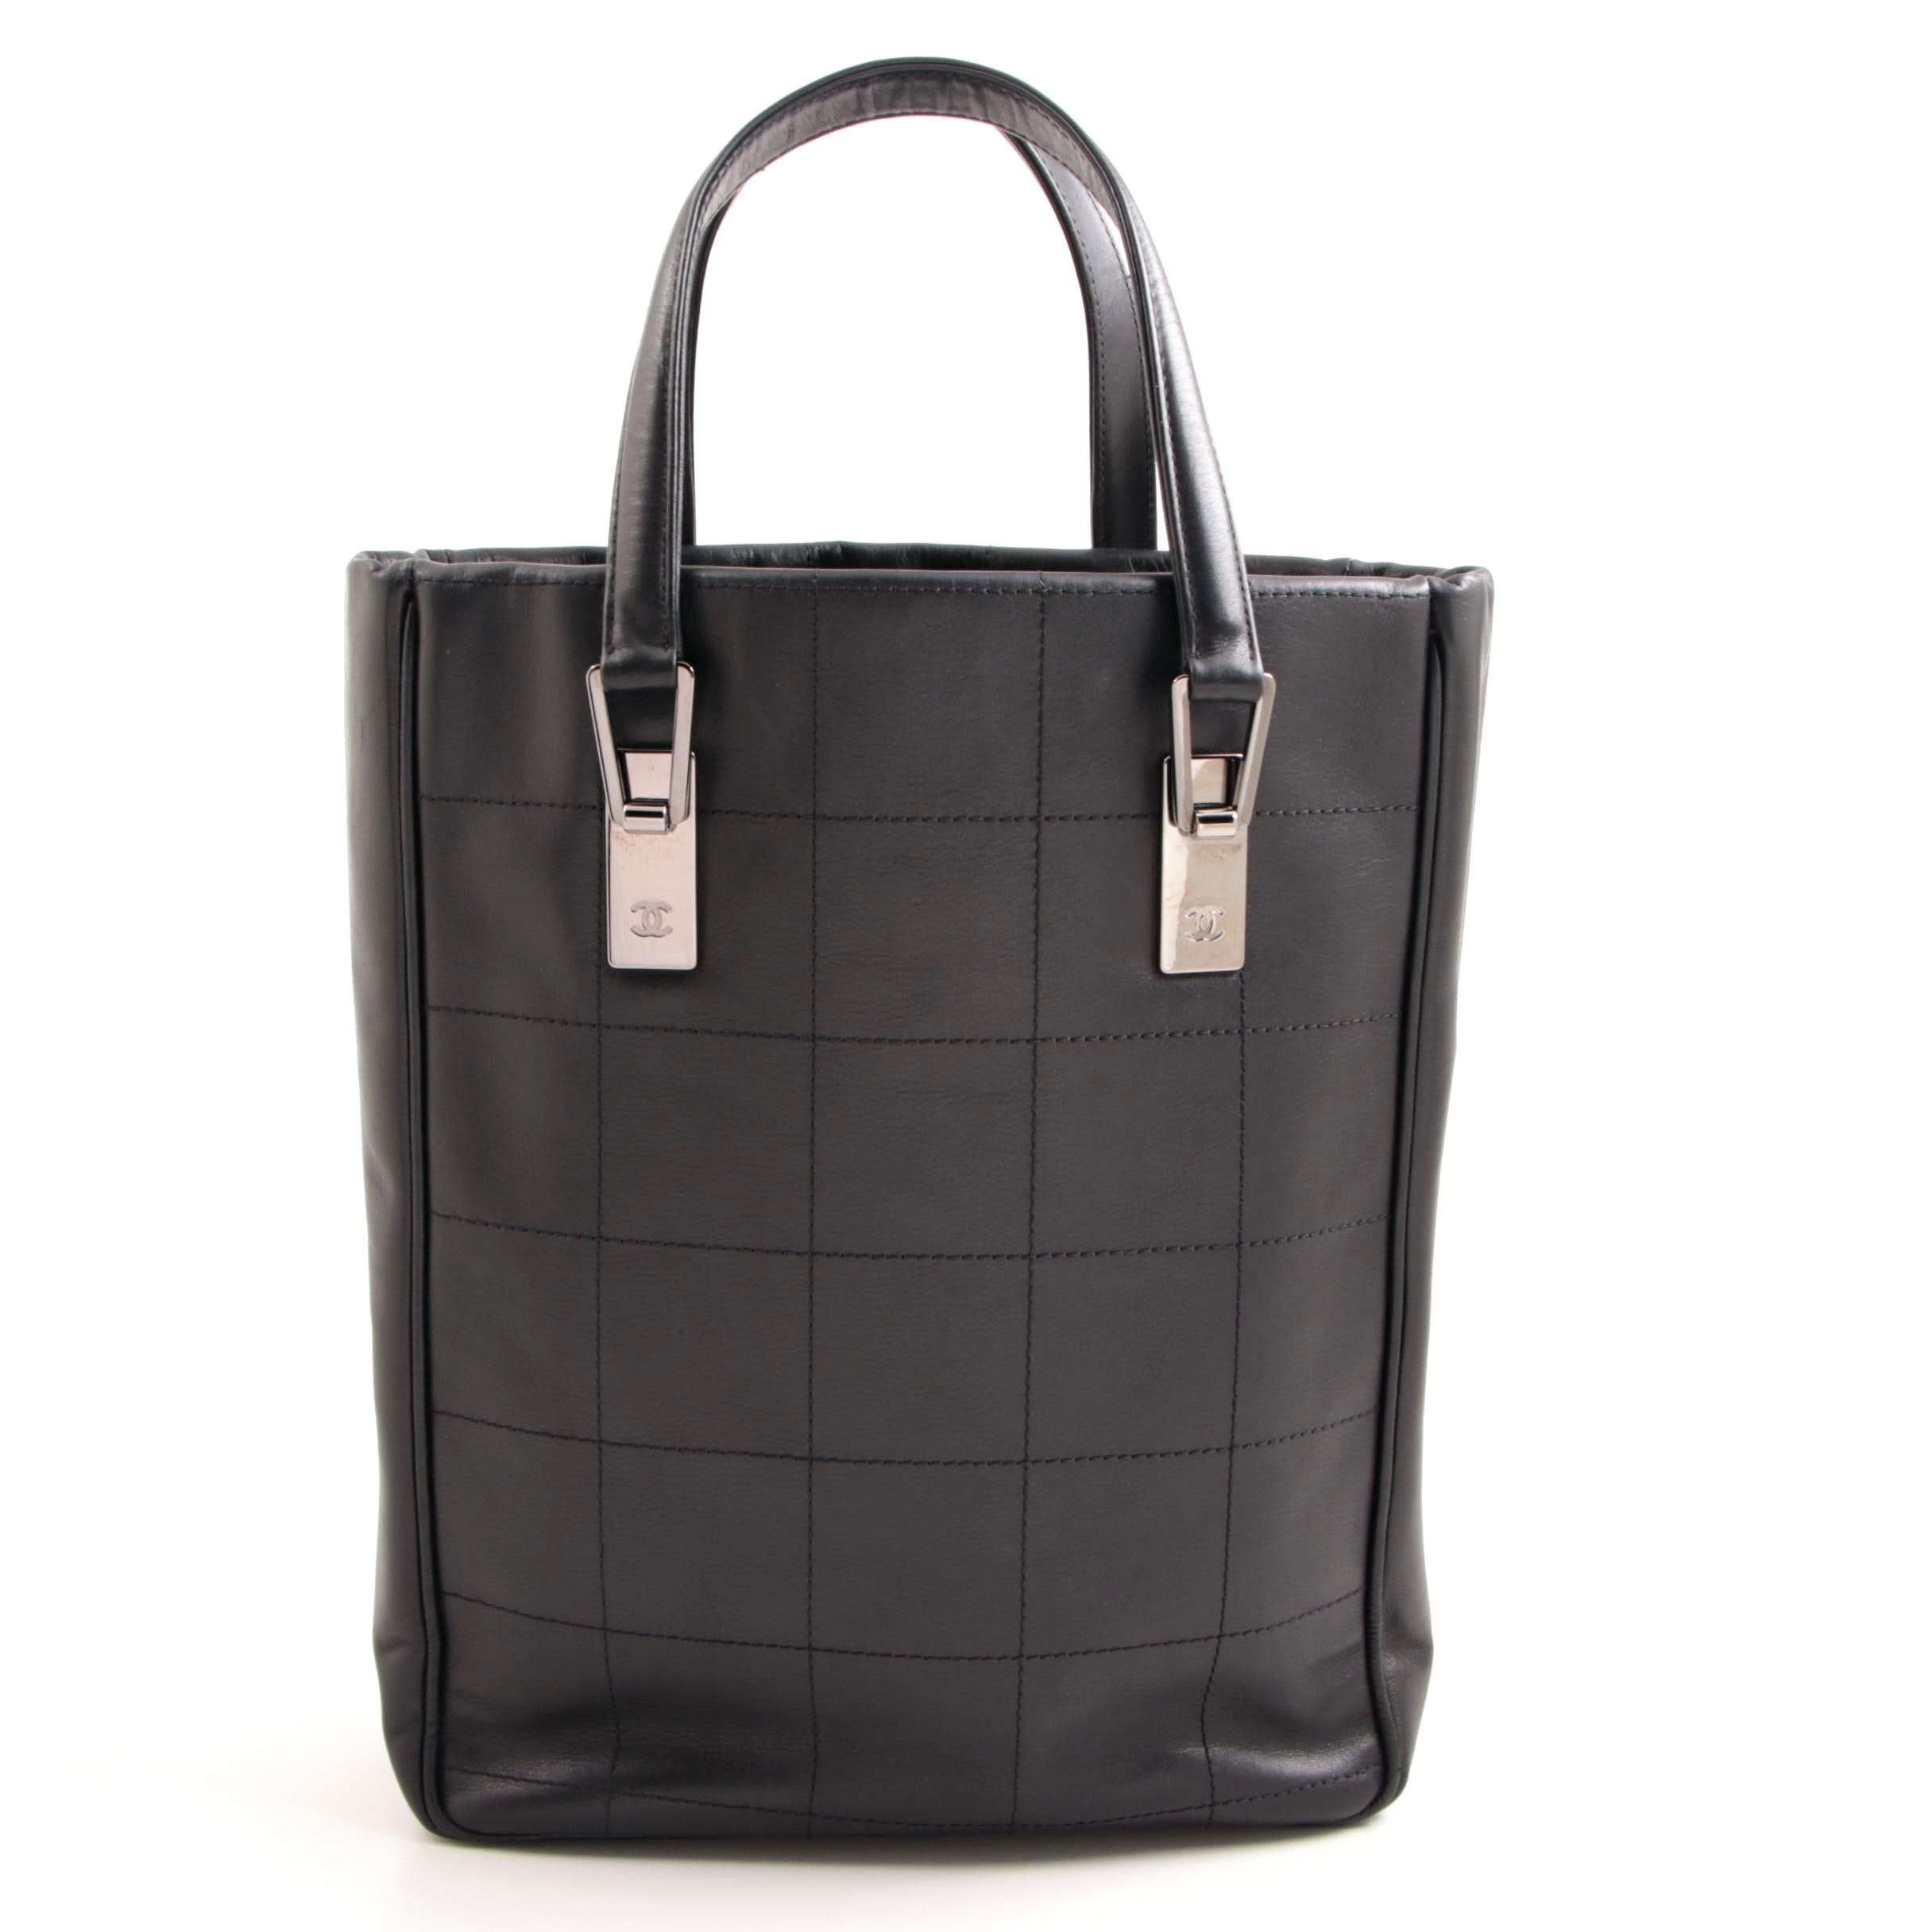 Chanel Quilted Lambskin Tote, Made in Italy